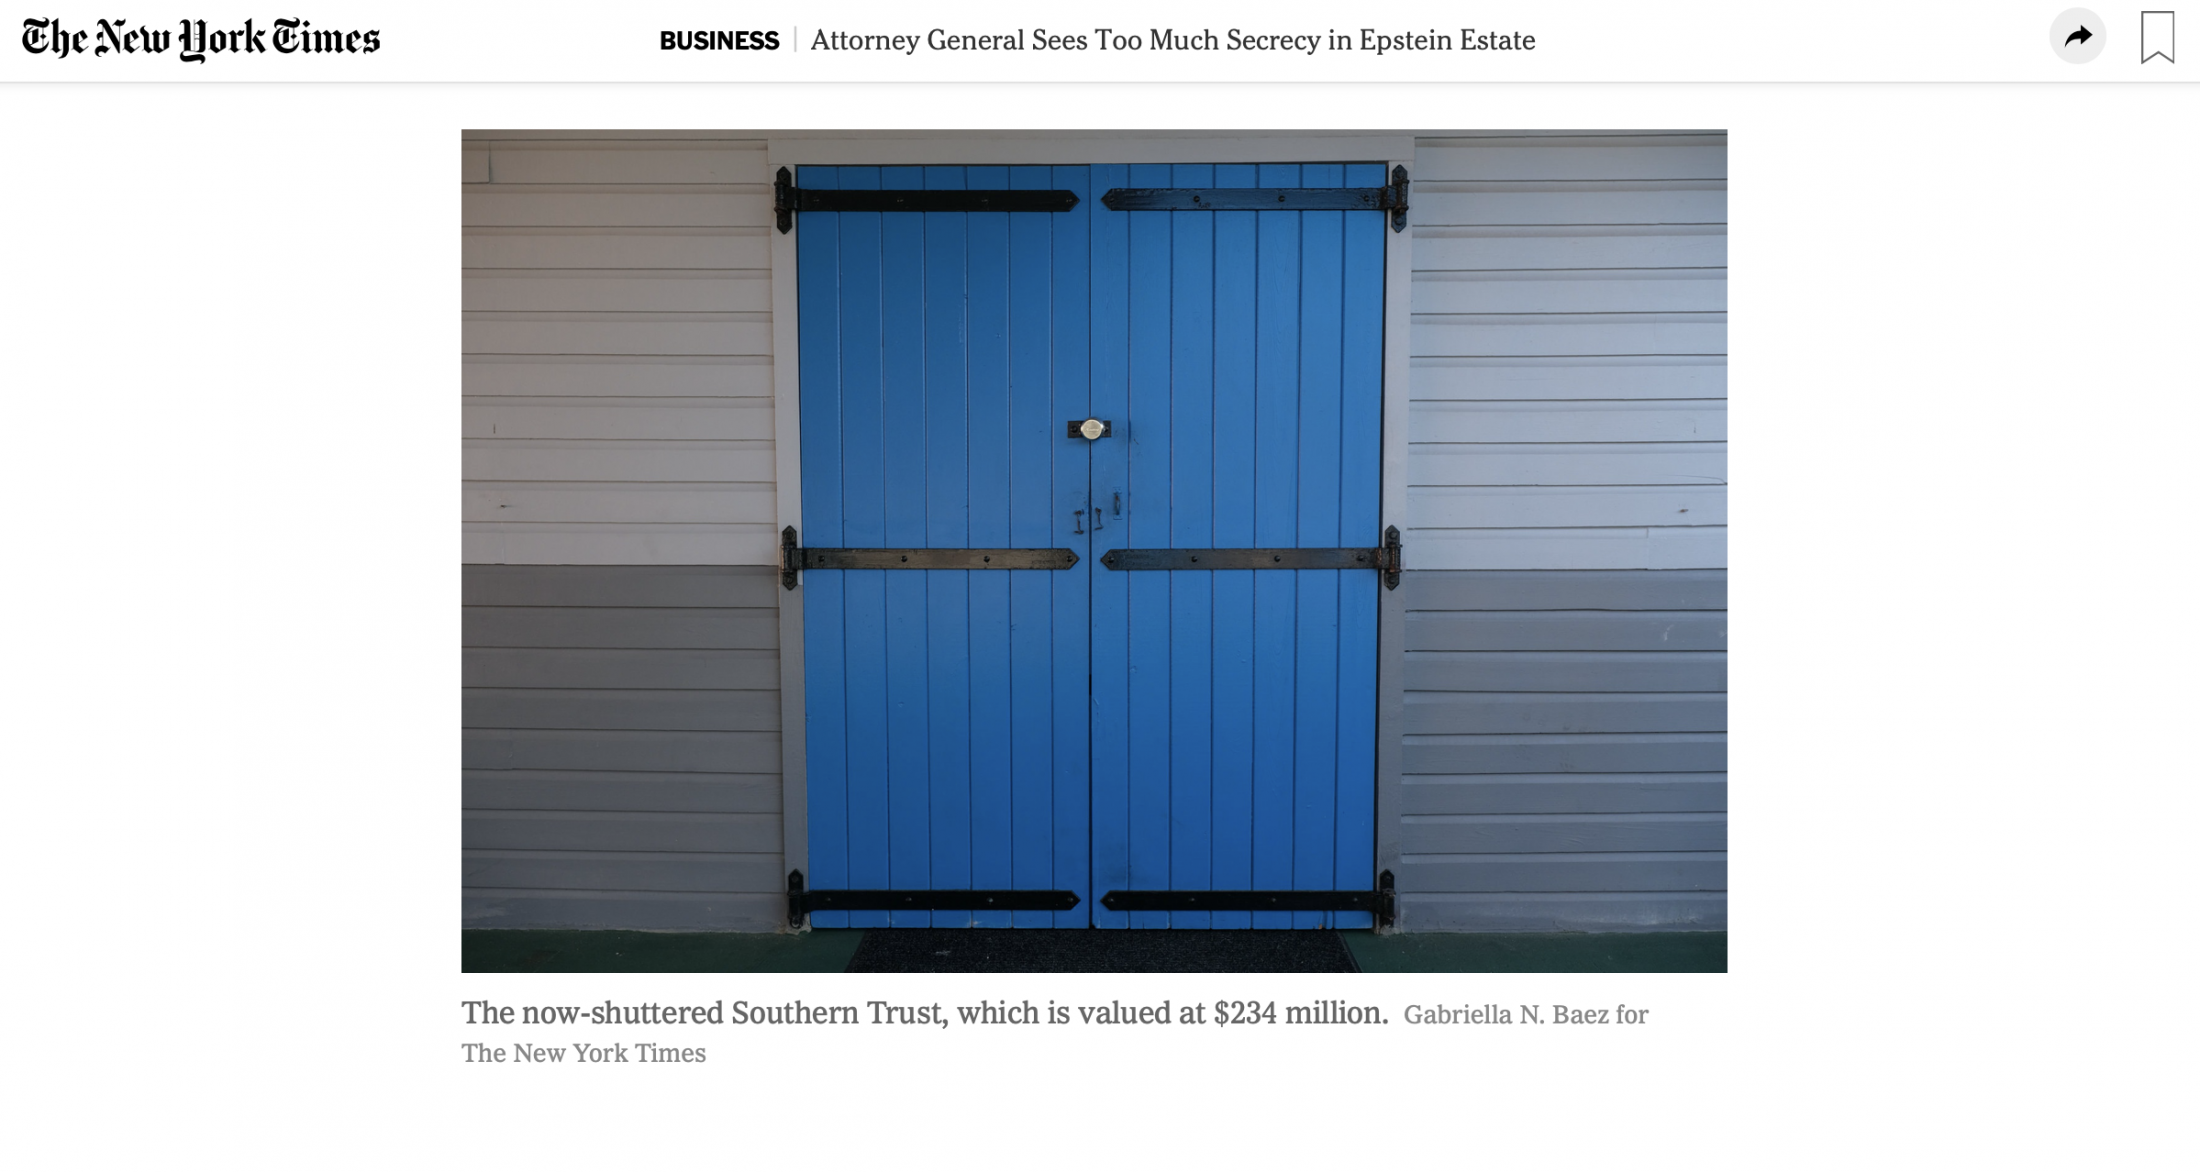 Art and Documentary Photography - Loading Screen_Shot_2020-04-28_at_1.25.50_PM.png